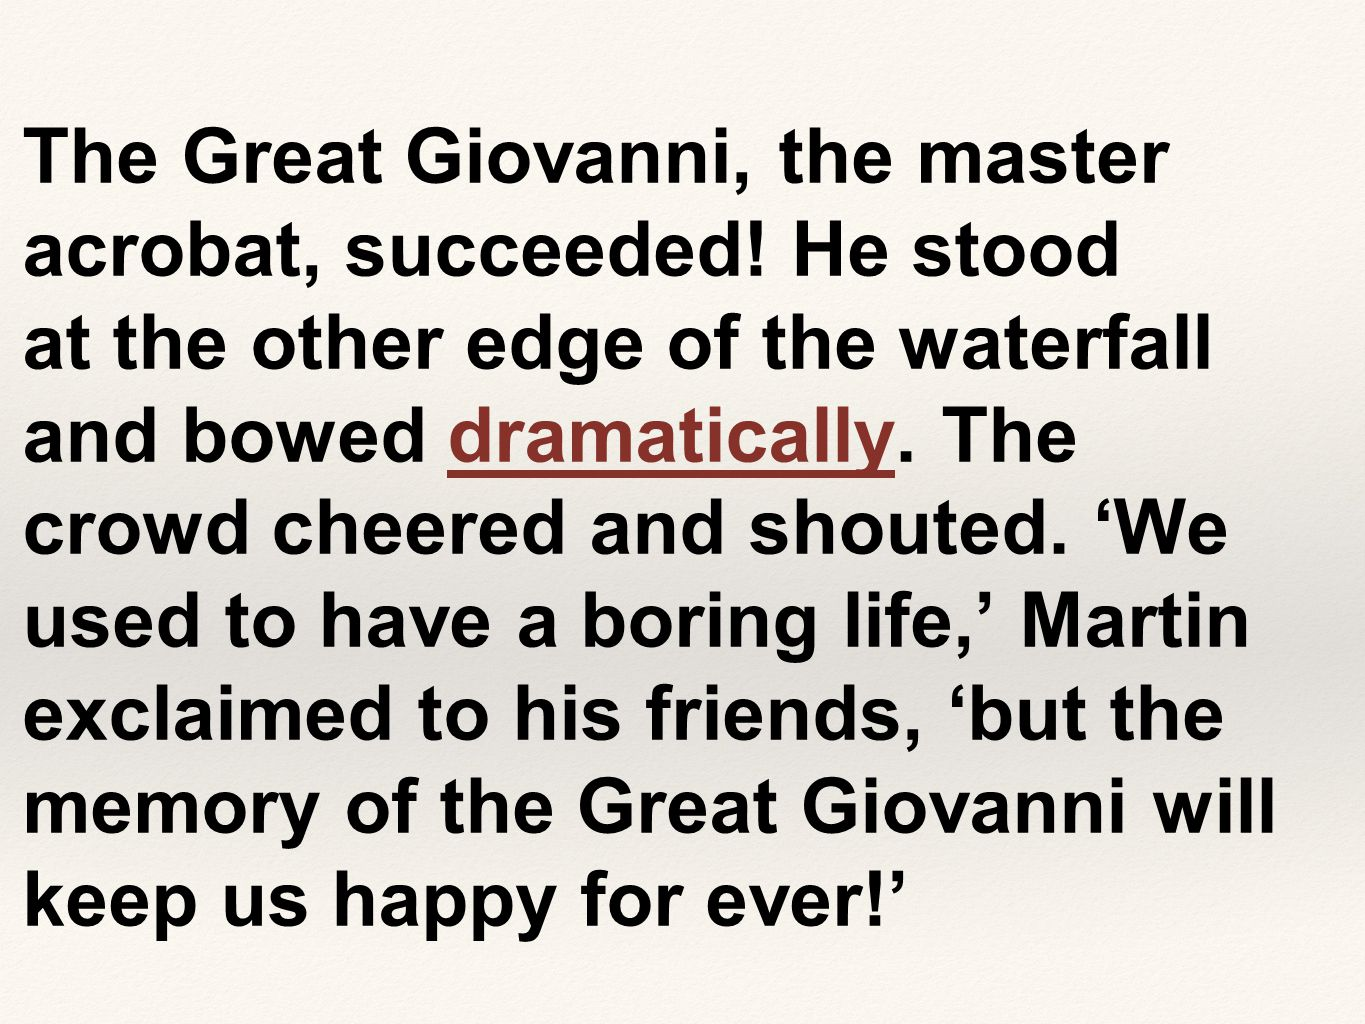 The Great Giovanni, the master acrobat, succeeded! He stood